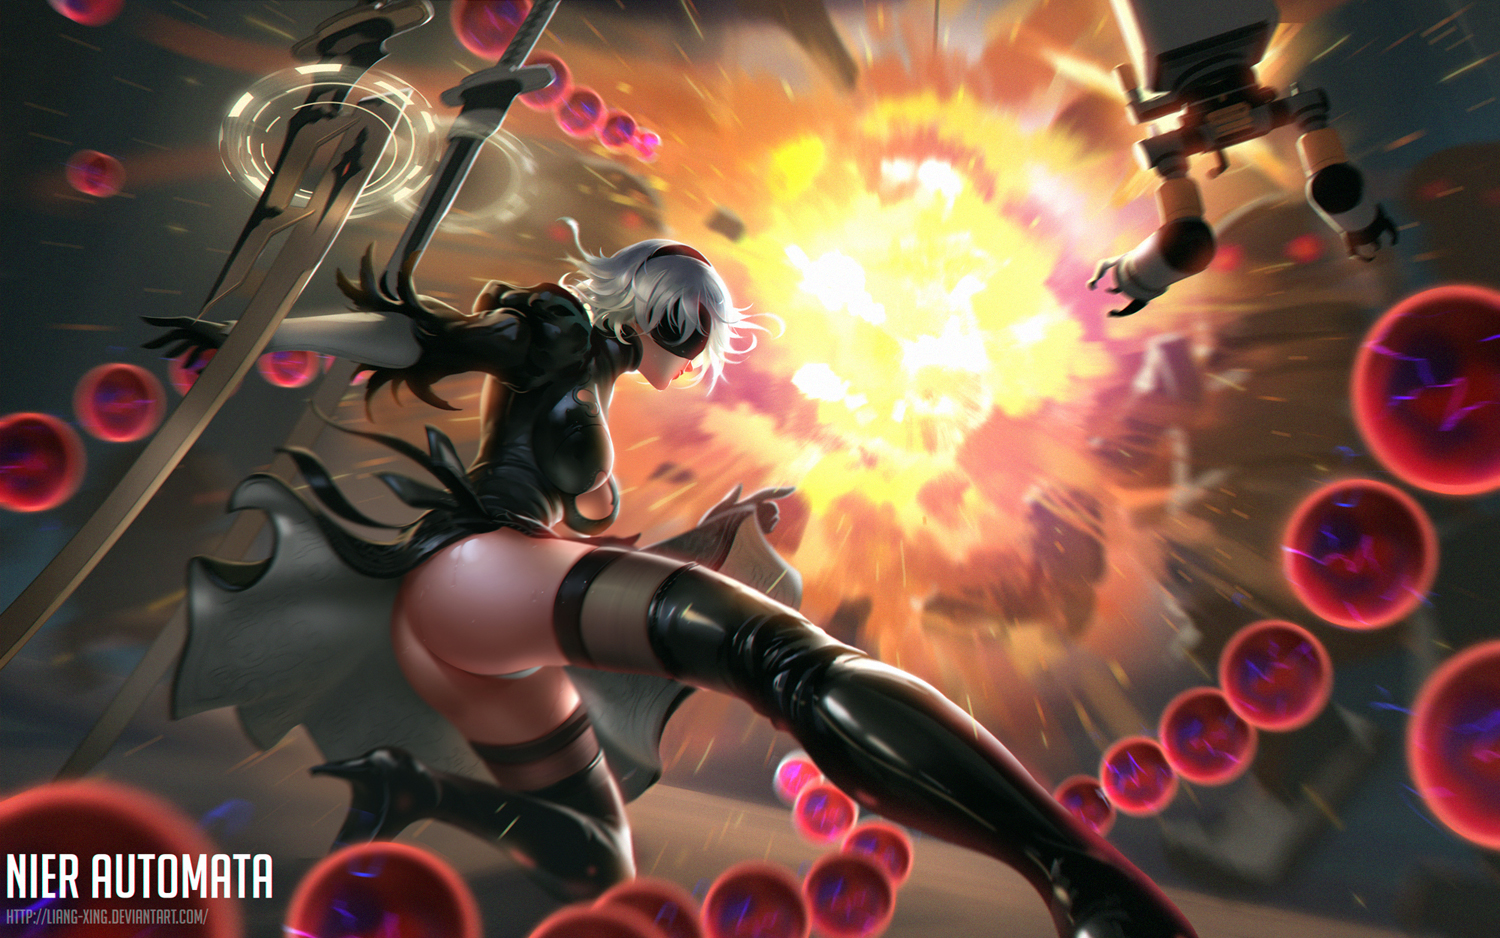 Nier Automata By Liang Xing On Deviantart